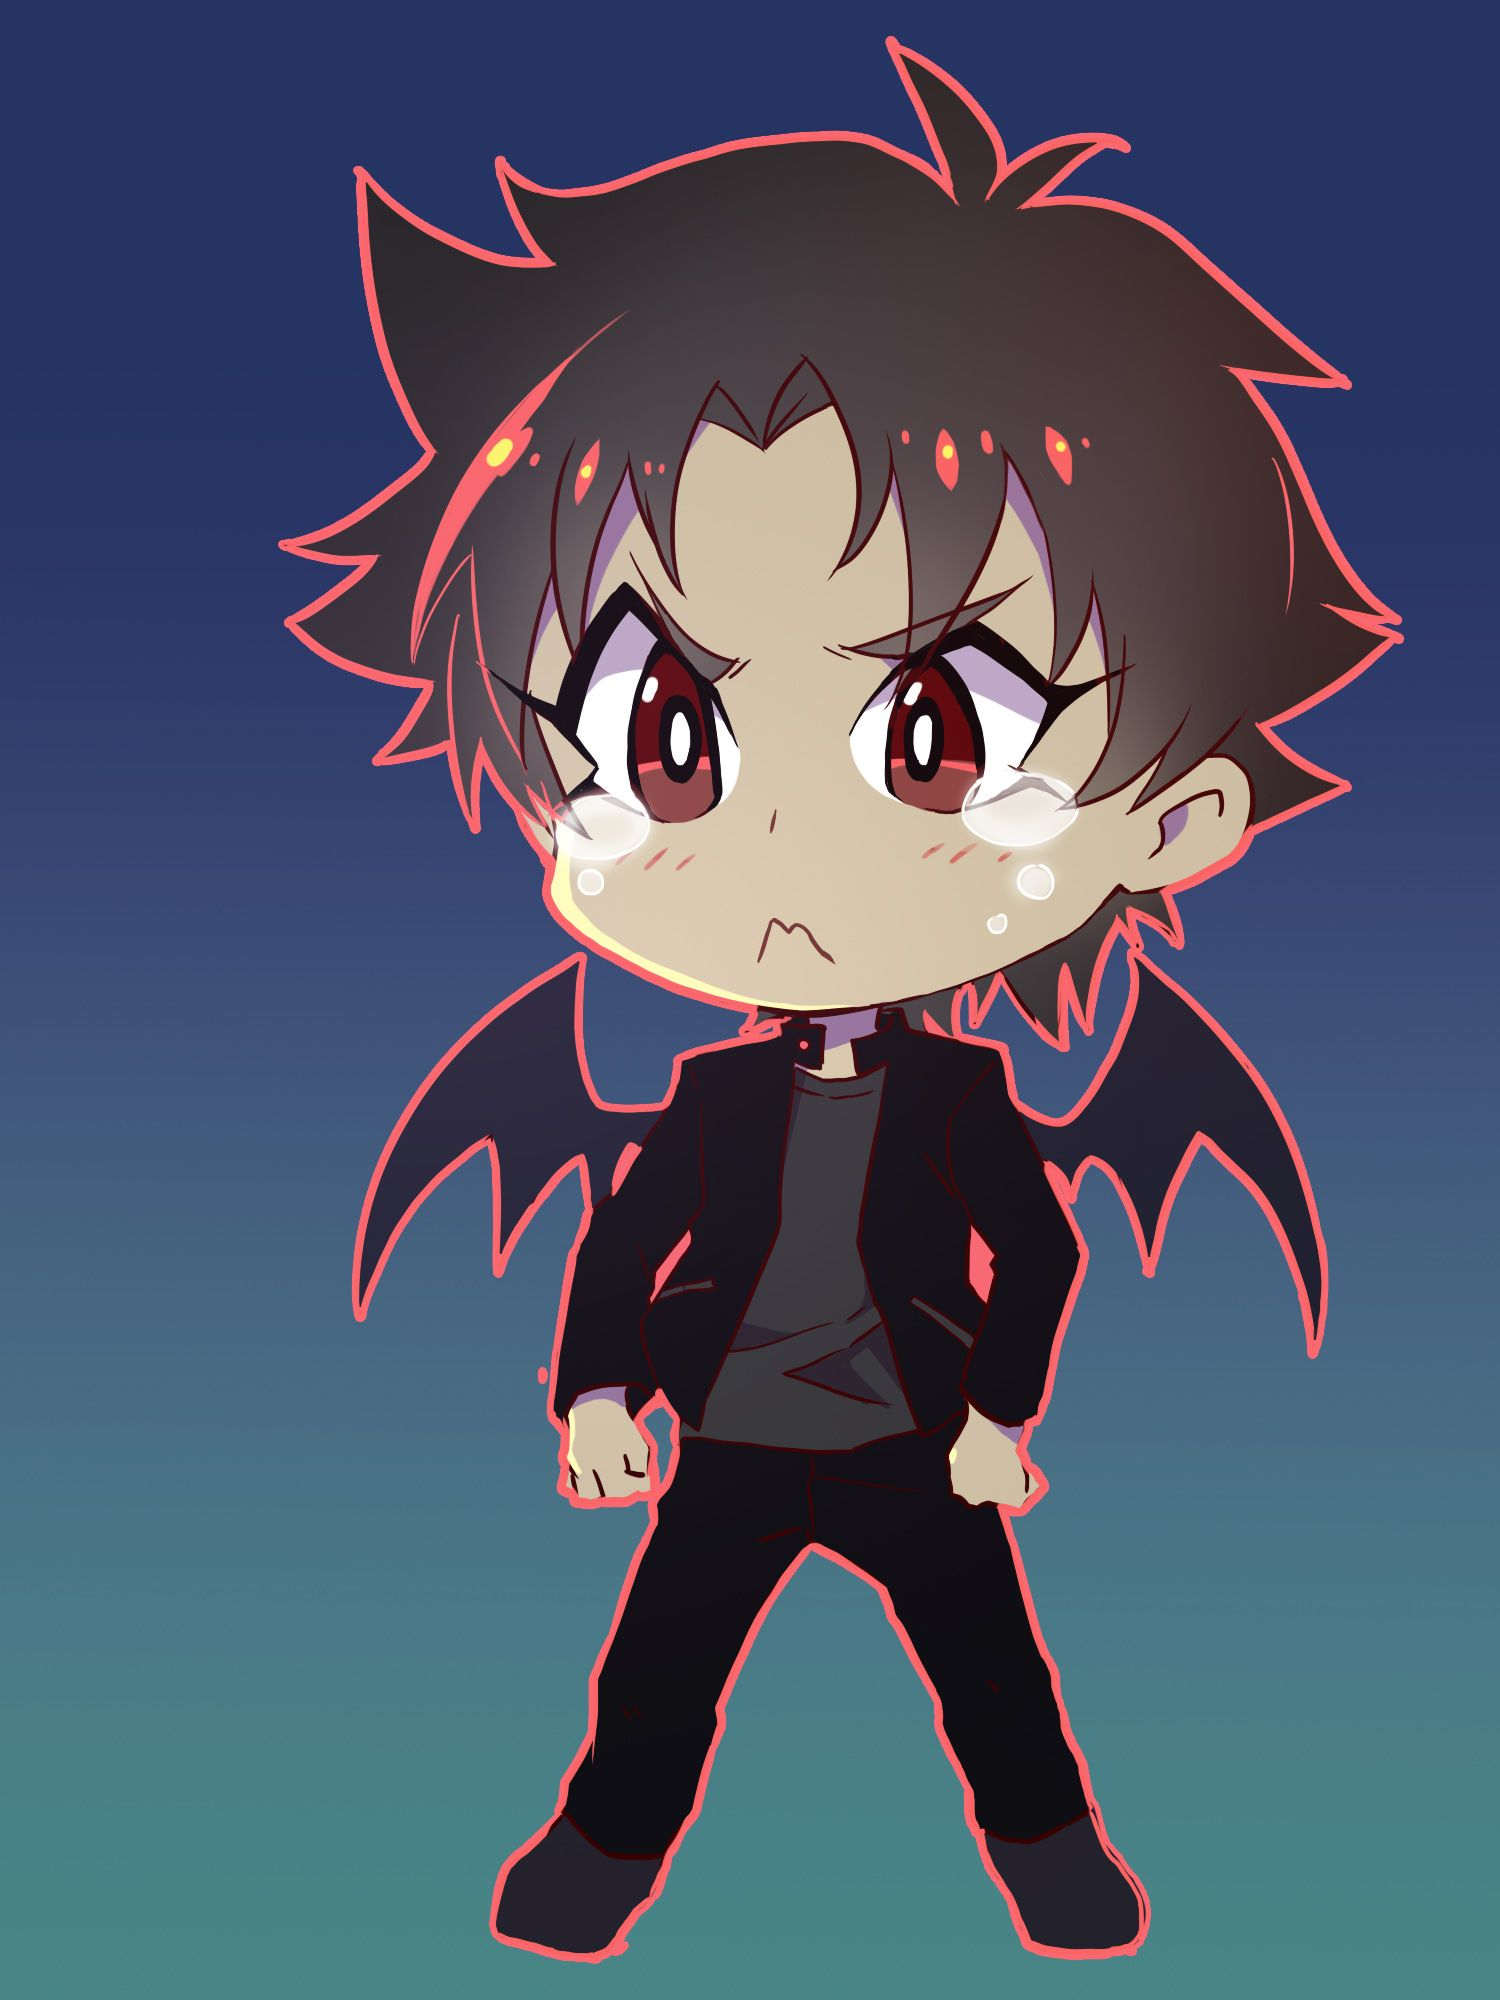 Pinterest Devilman crybaby, Anime, Cry baby